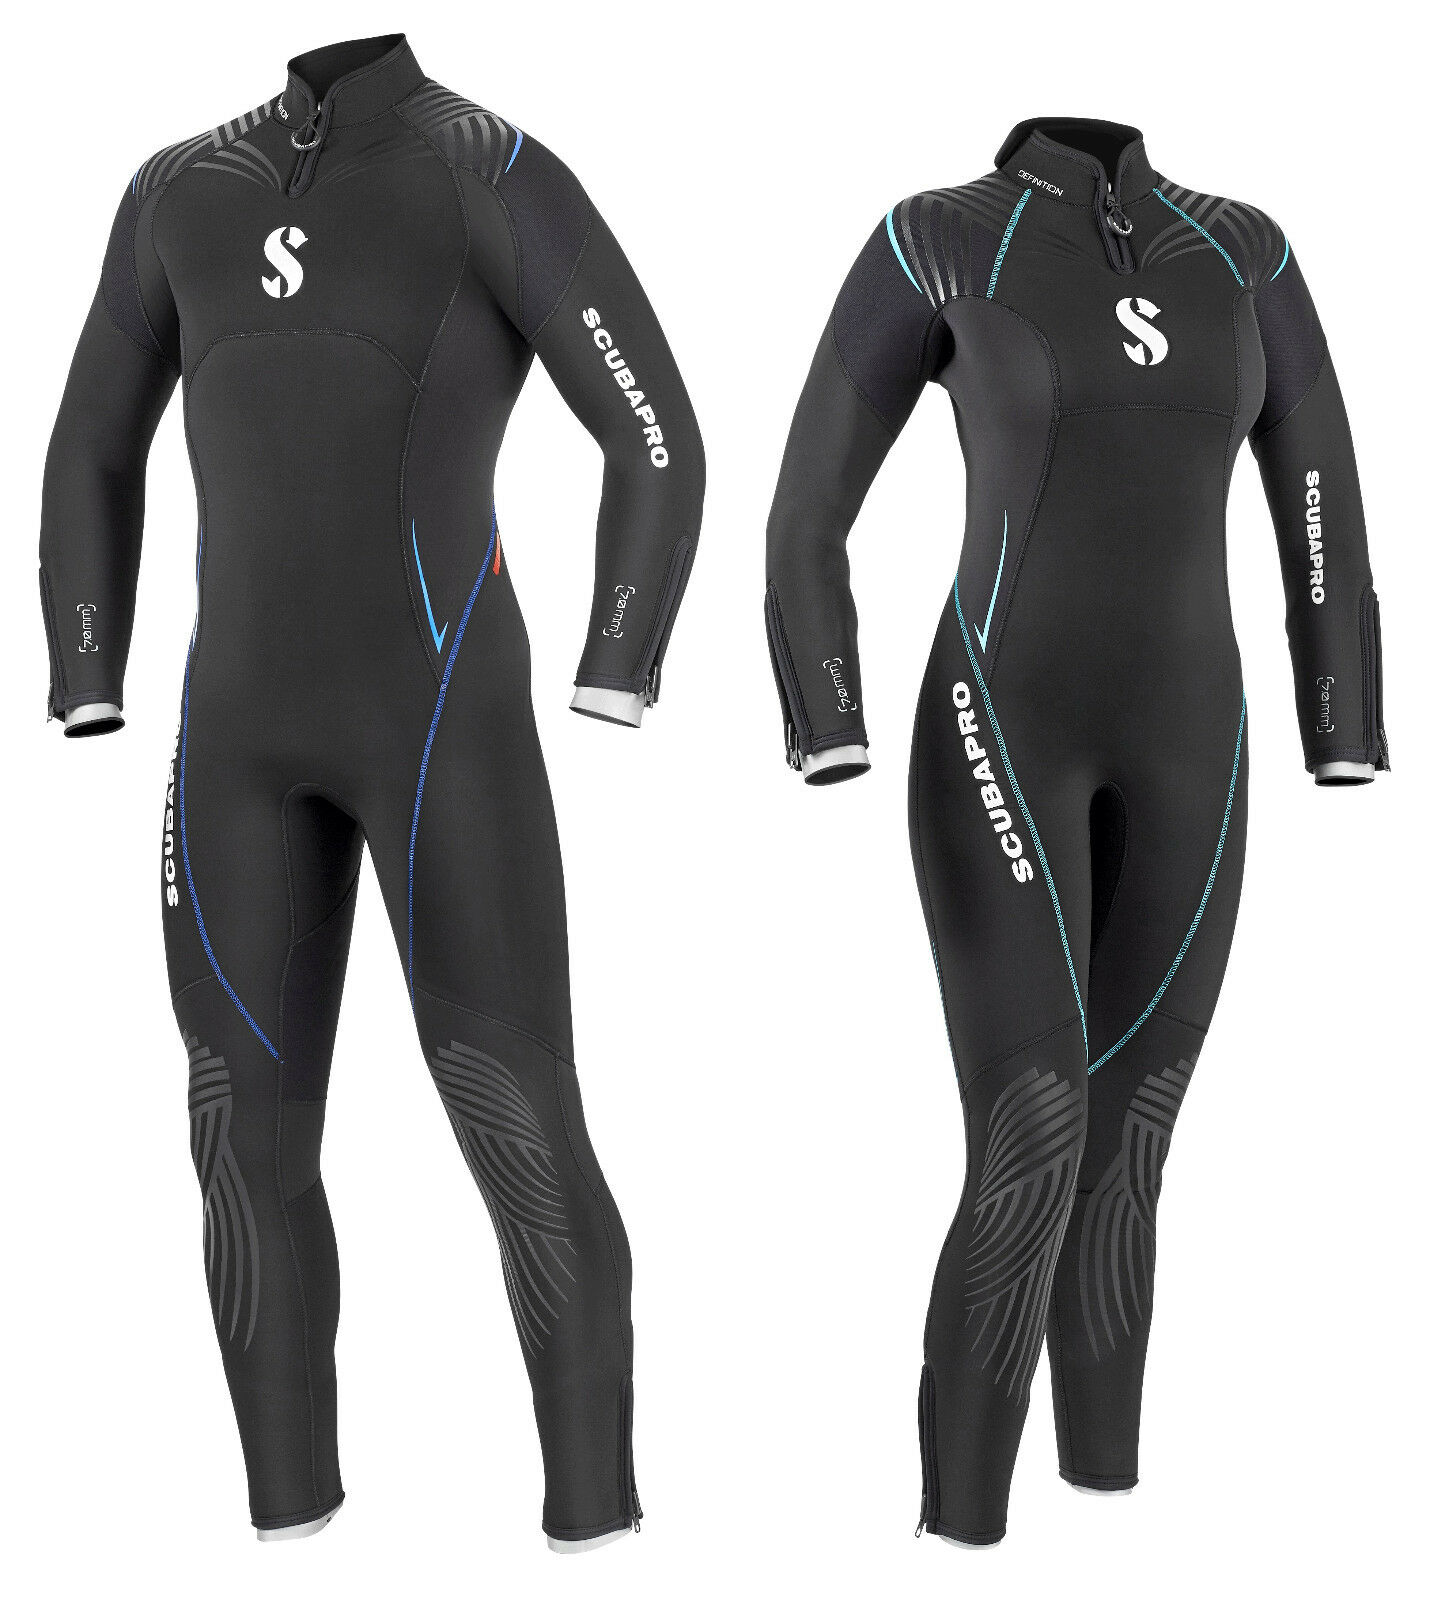 Scubapro Definizione 7.0 Muta Immersione Immersione Immersione Erl 36-58 Donna e Uomo 7mm in Neoprene 957f3a